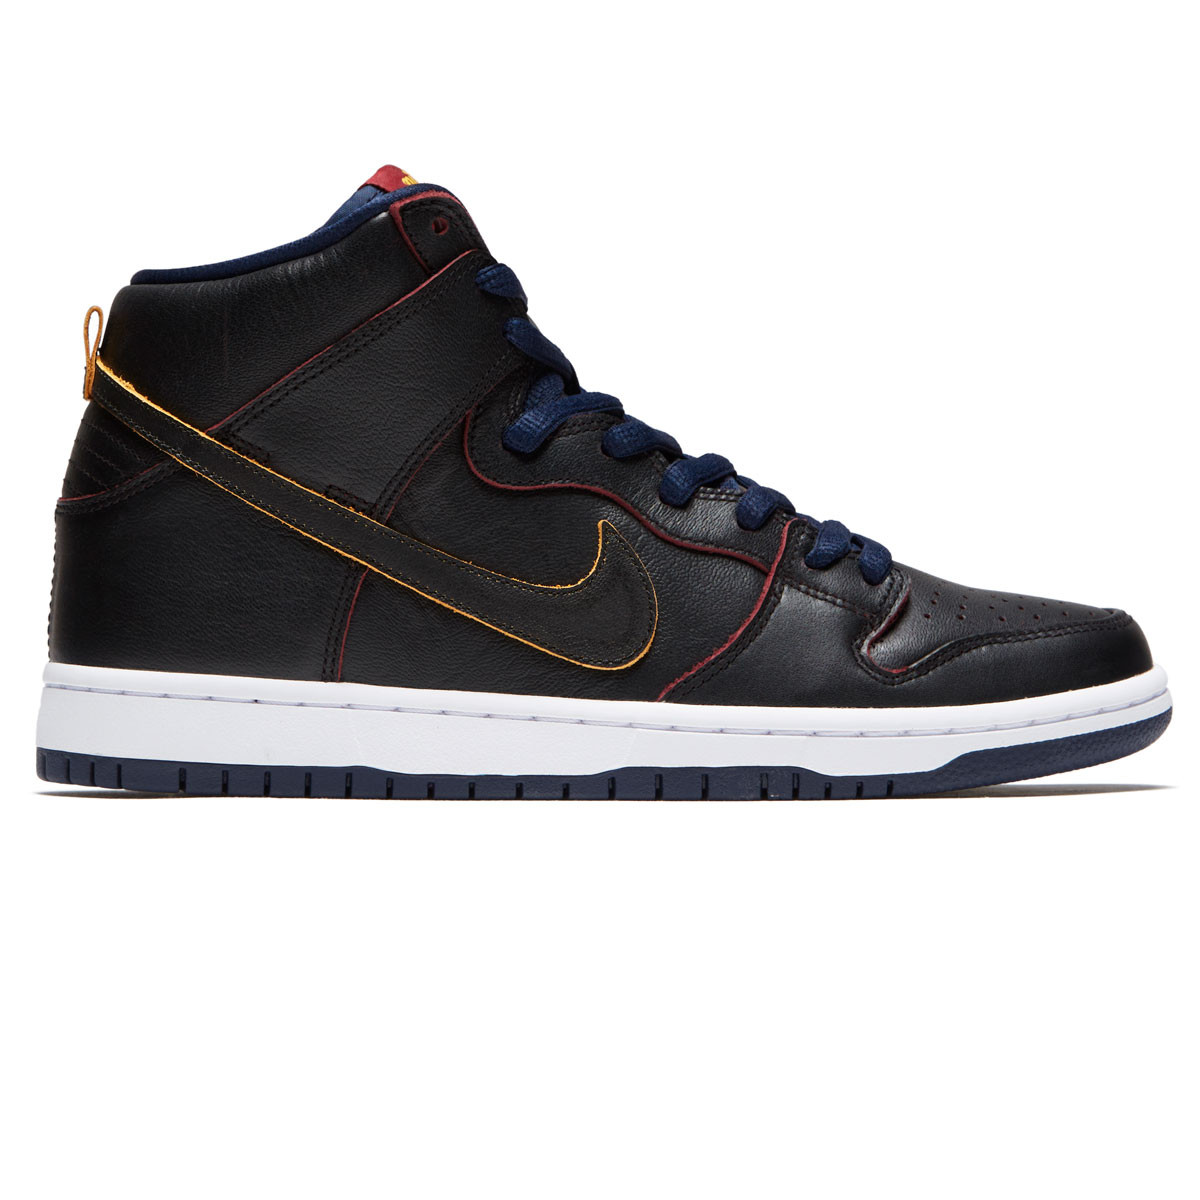 best service 88659 89ab2 Nike SB x NBA Dunk High Pro Shoes